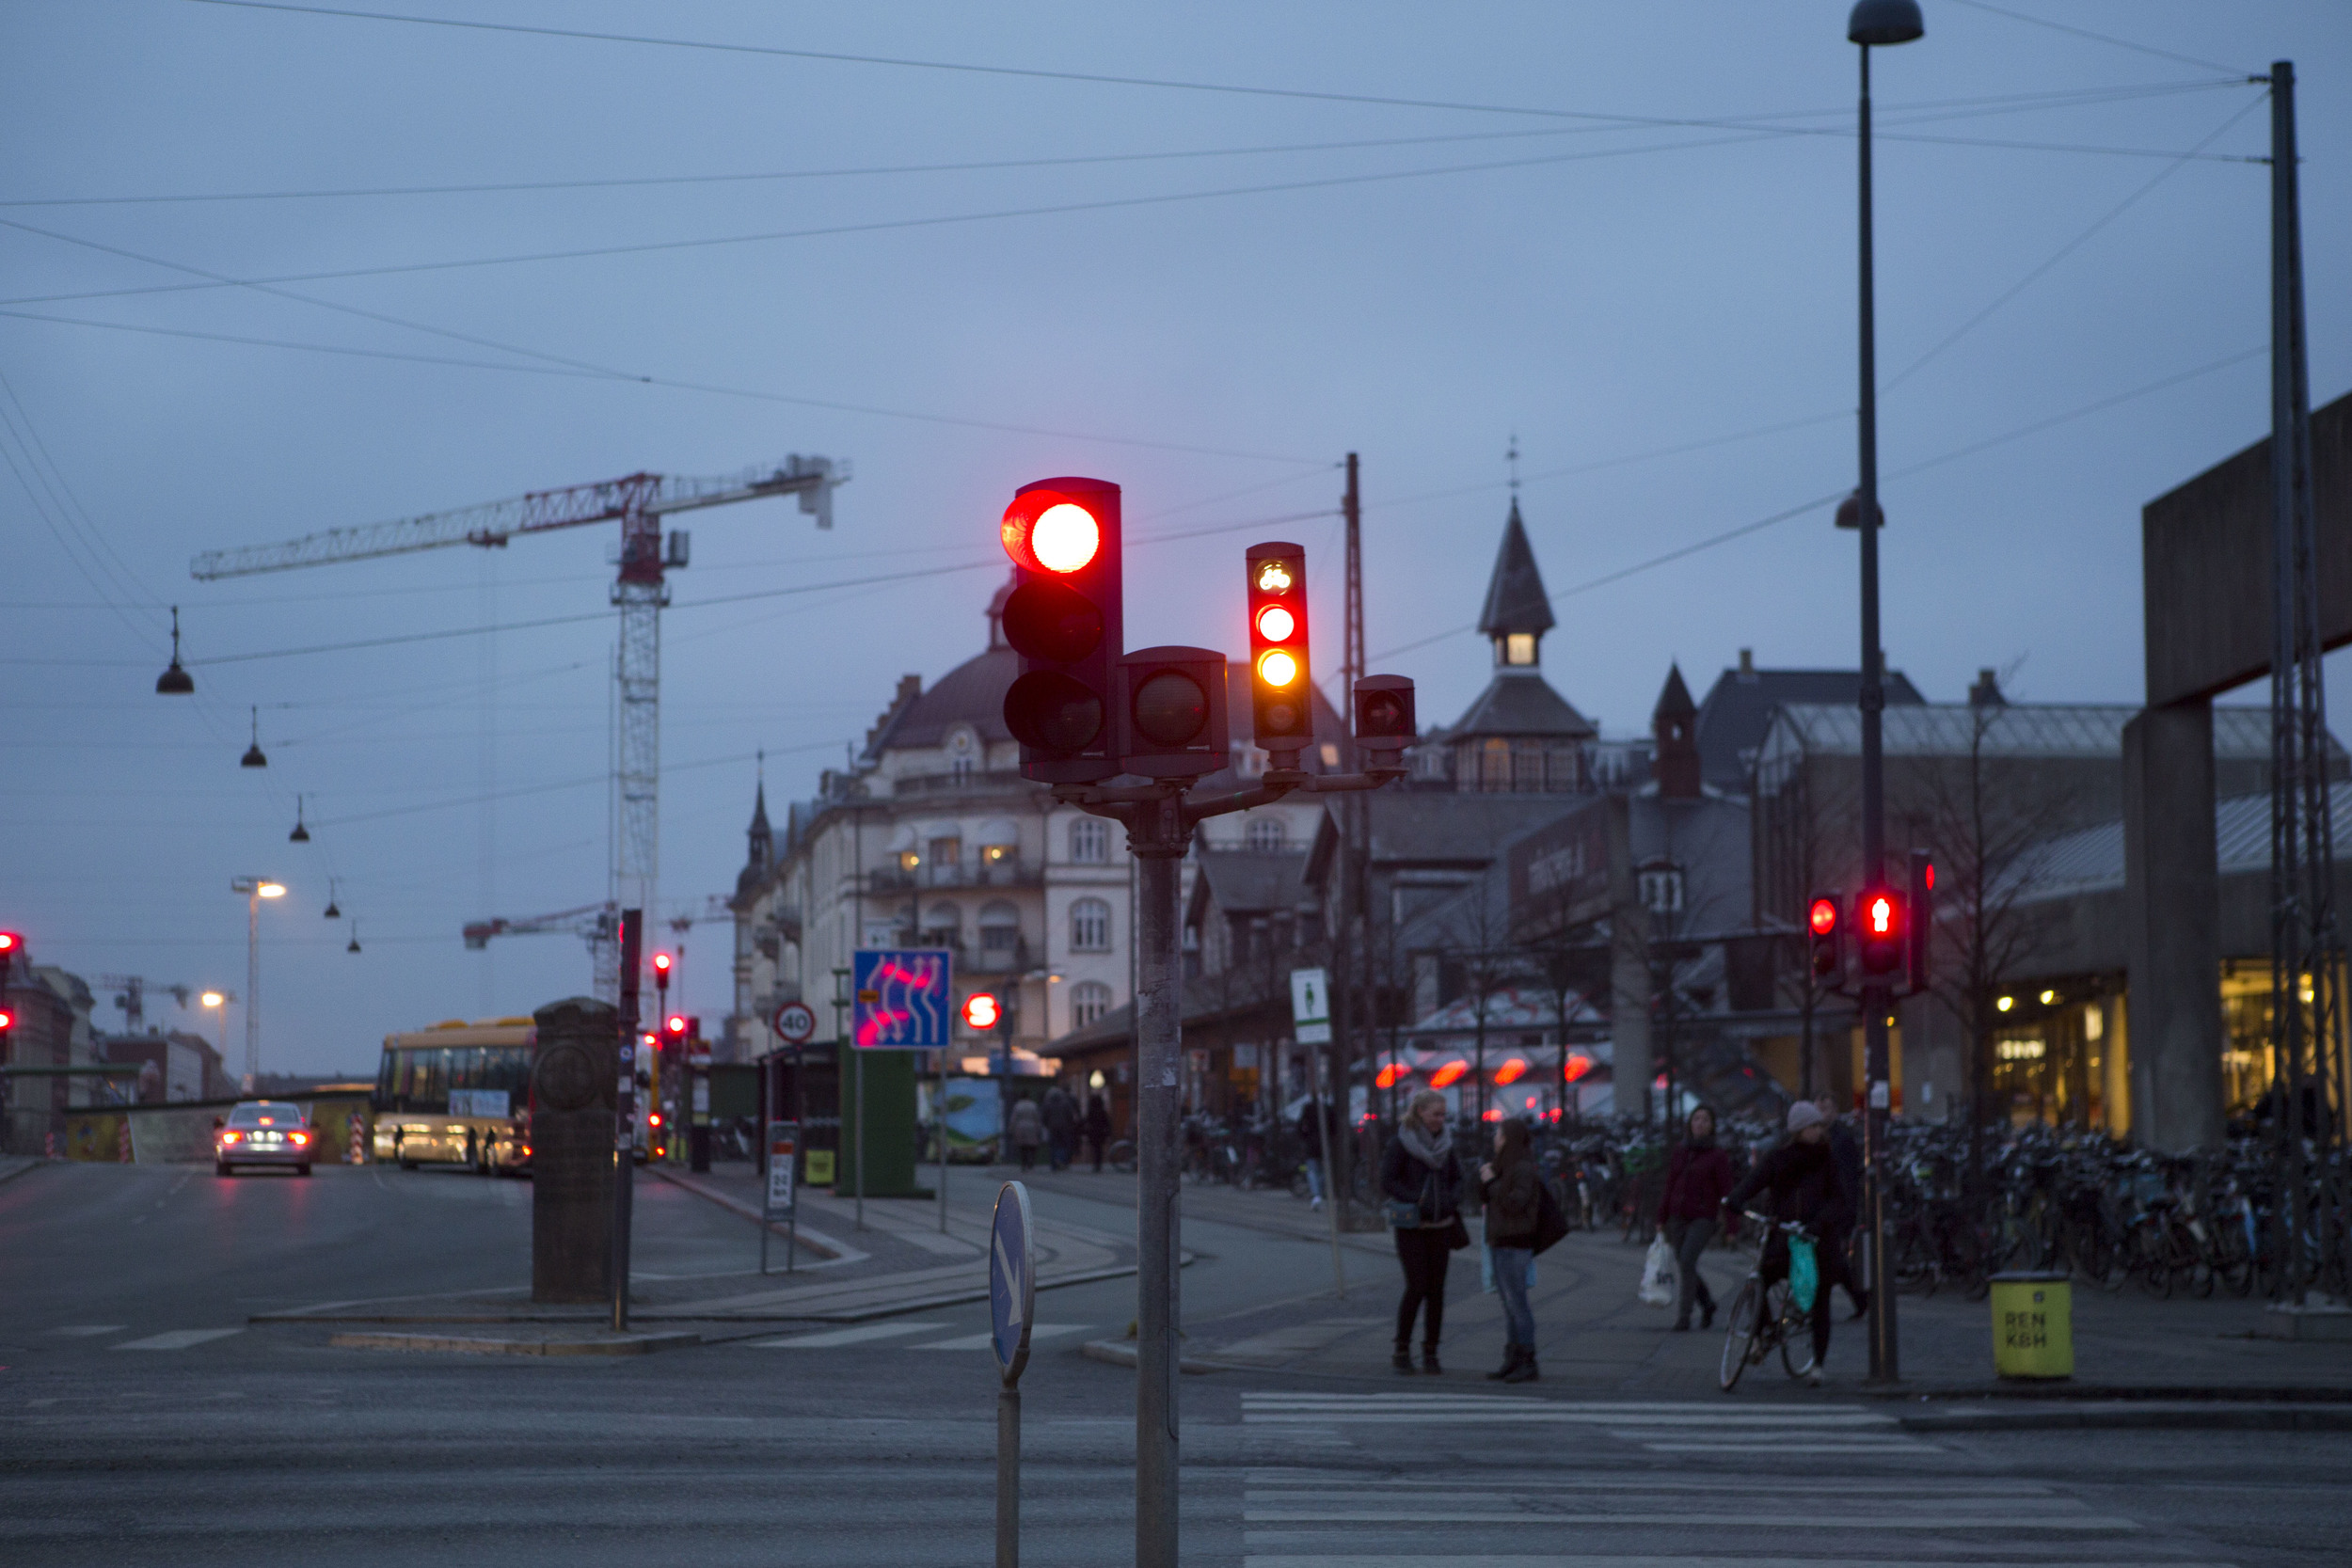 People waiting for the traffic lights